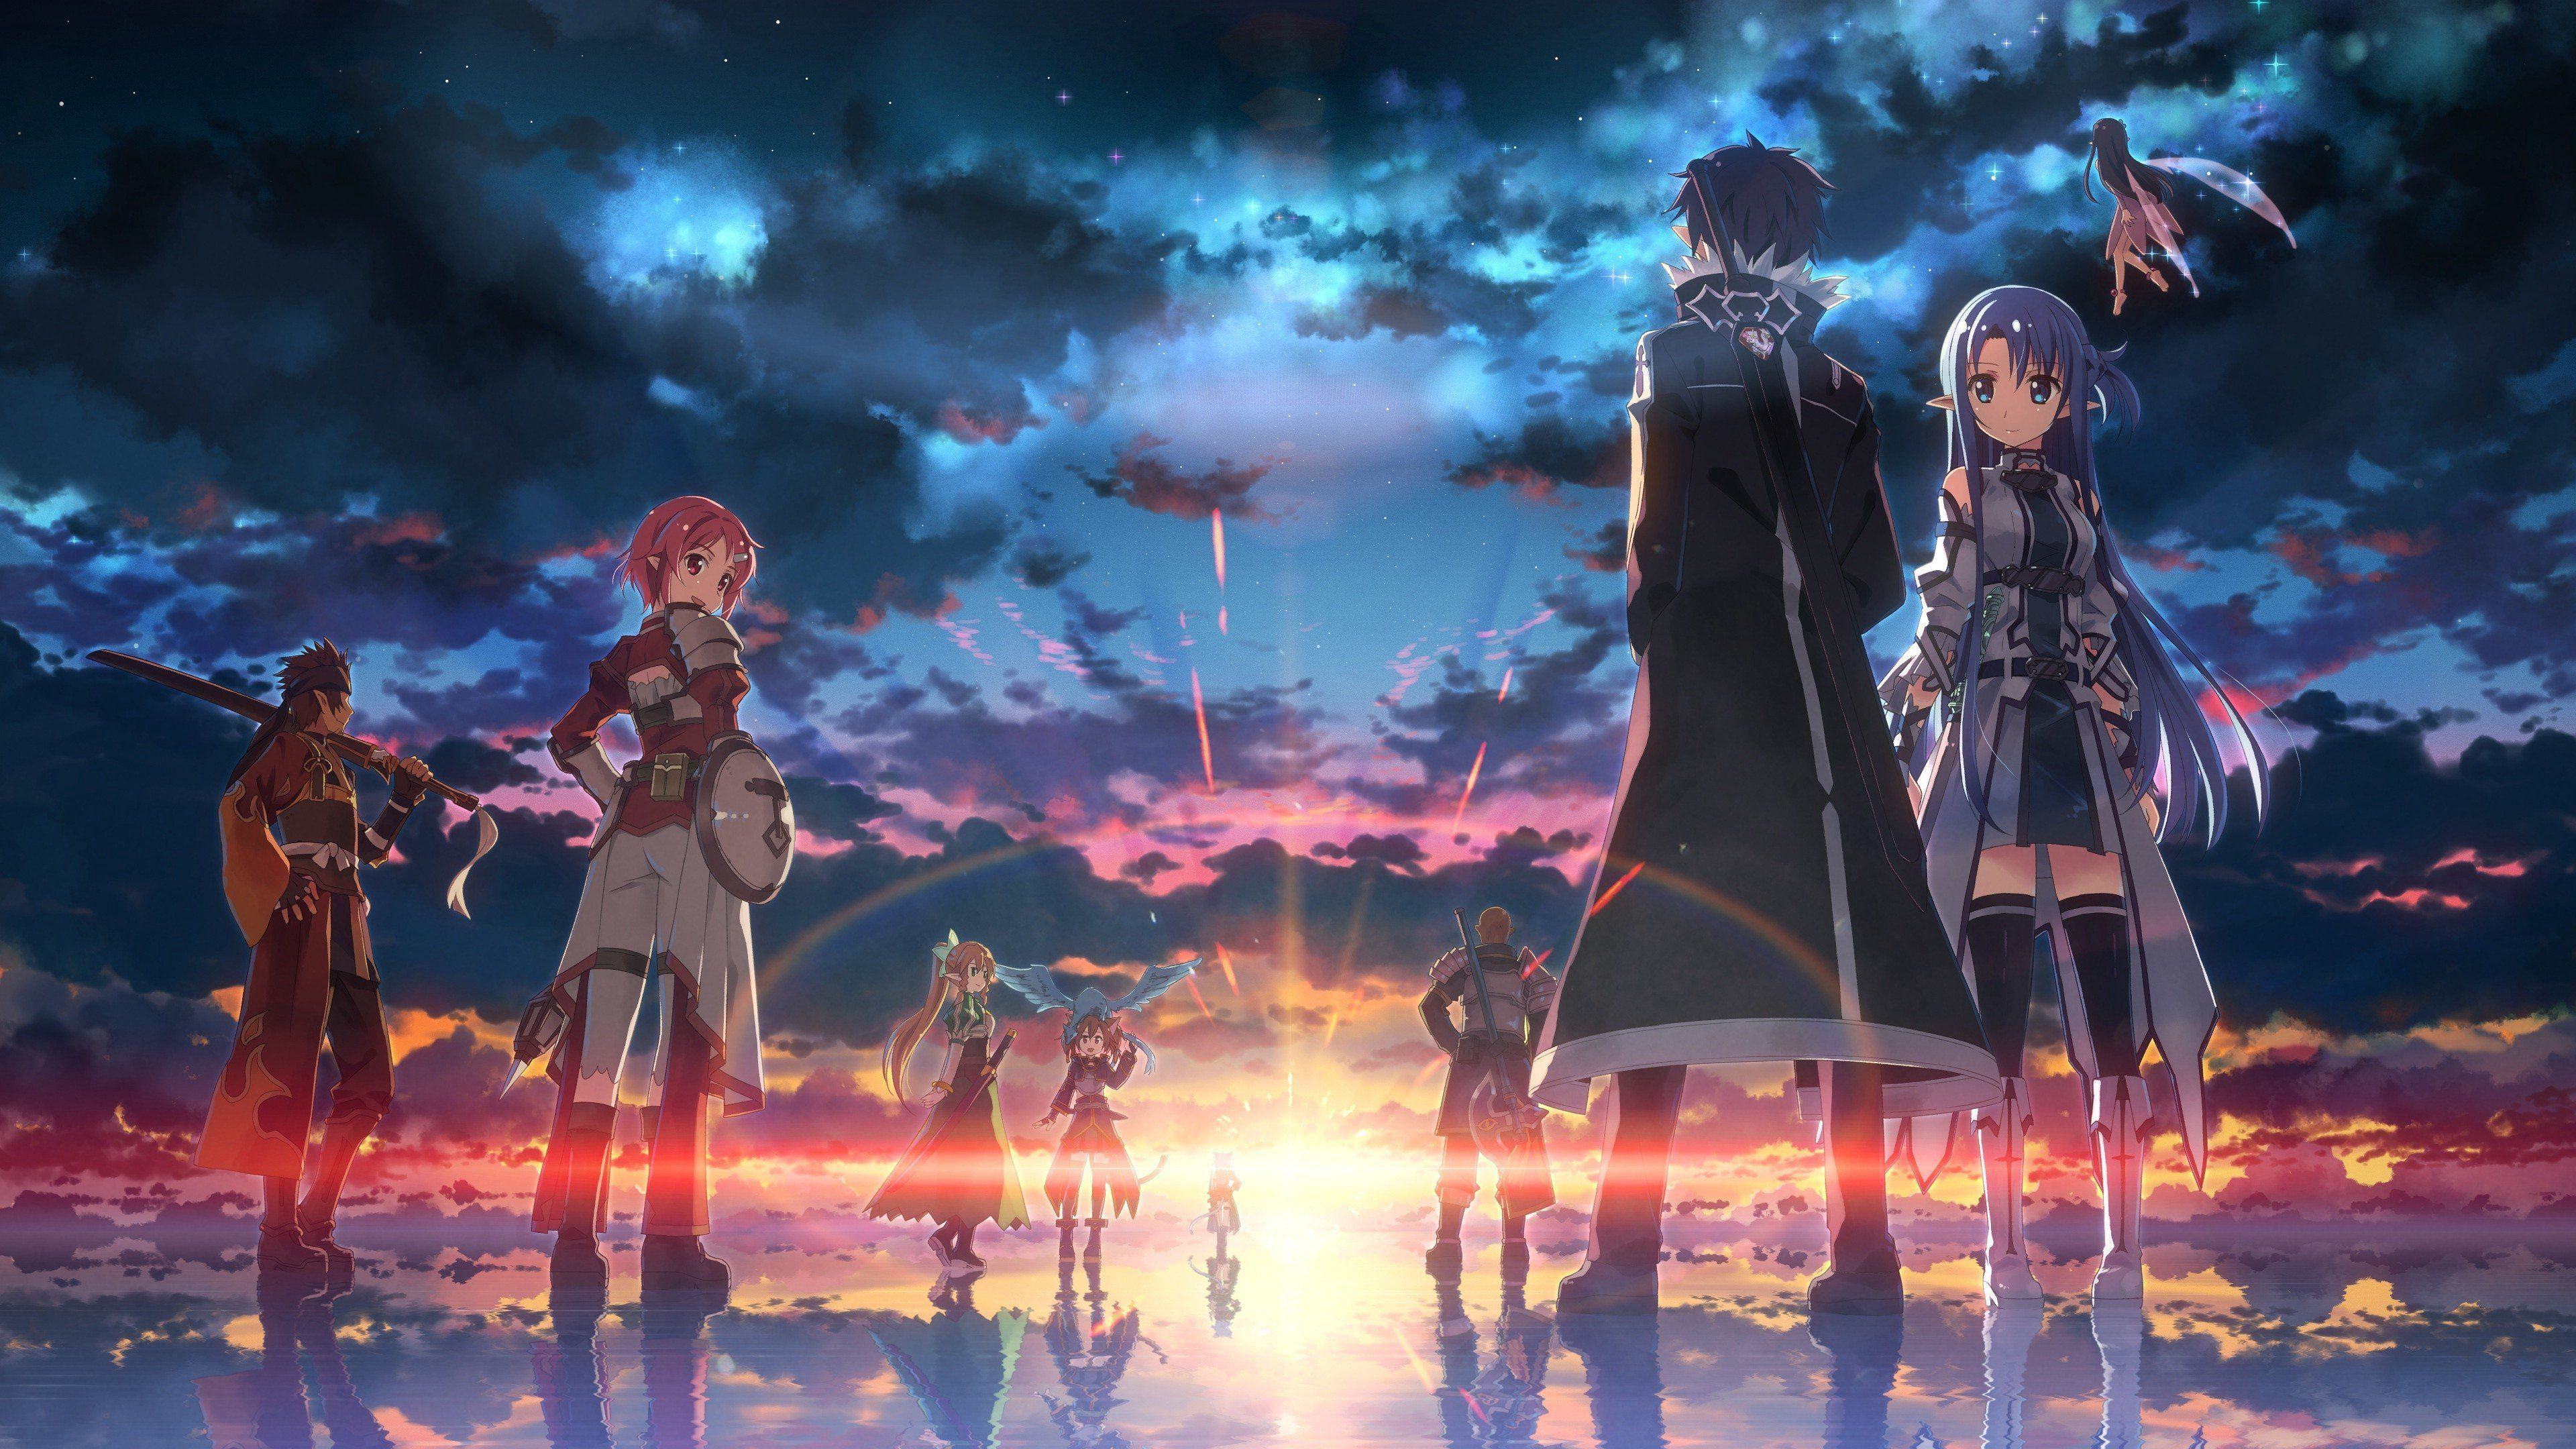 Sword Art, HD Games, 4k Wallpapers, Images, Backgrounds